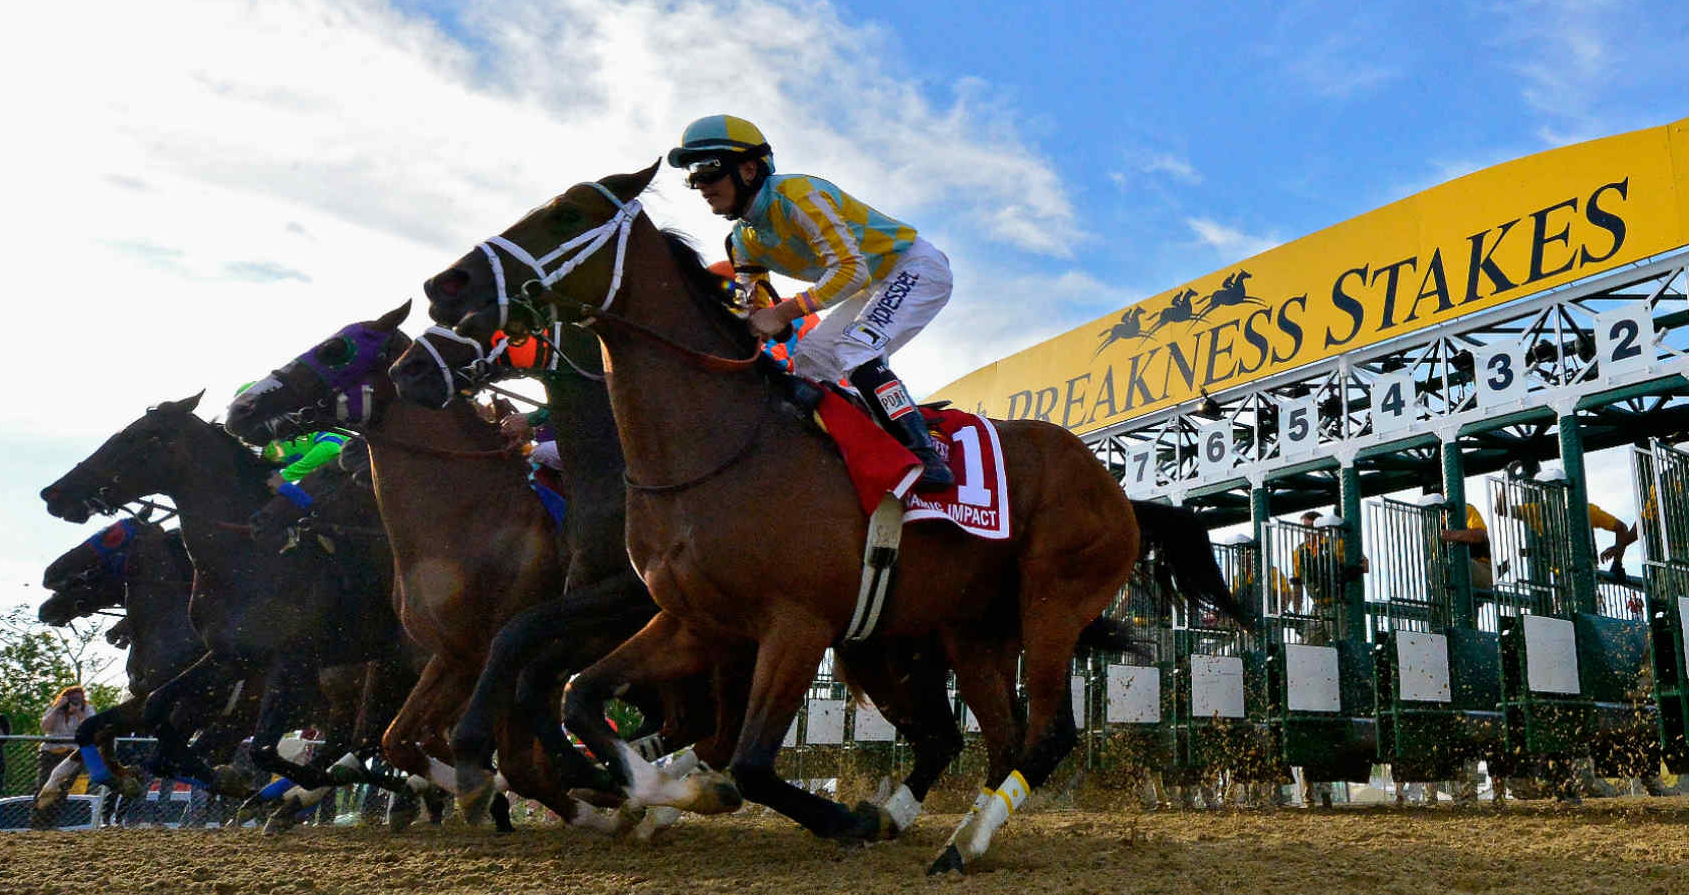 Preakness Stakes 2021: News and Notes from Pimlico